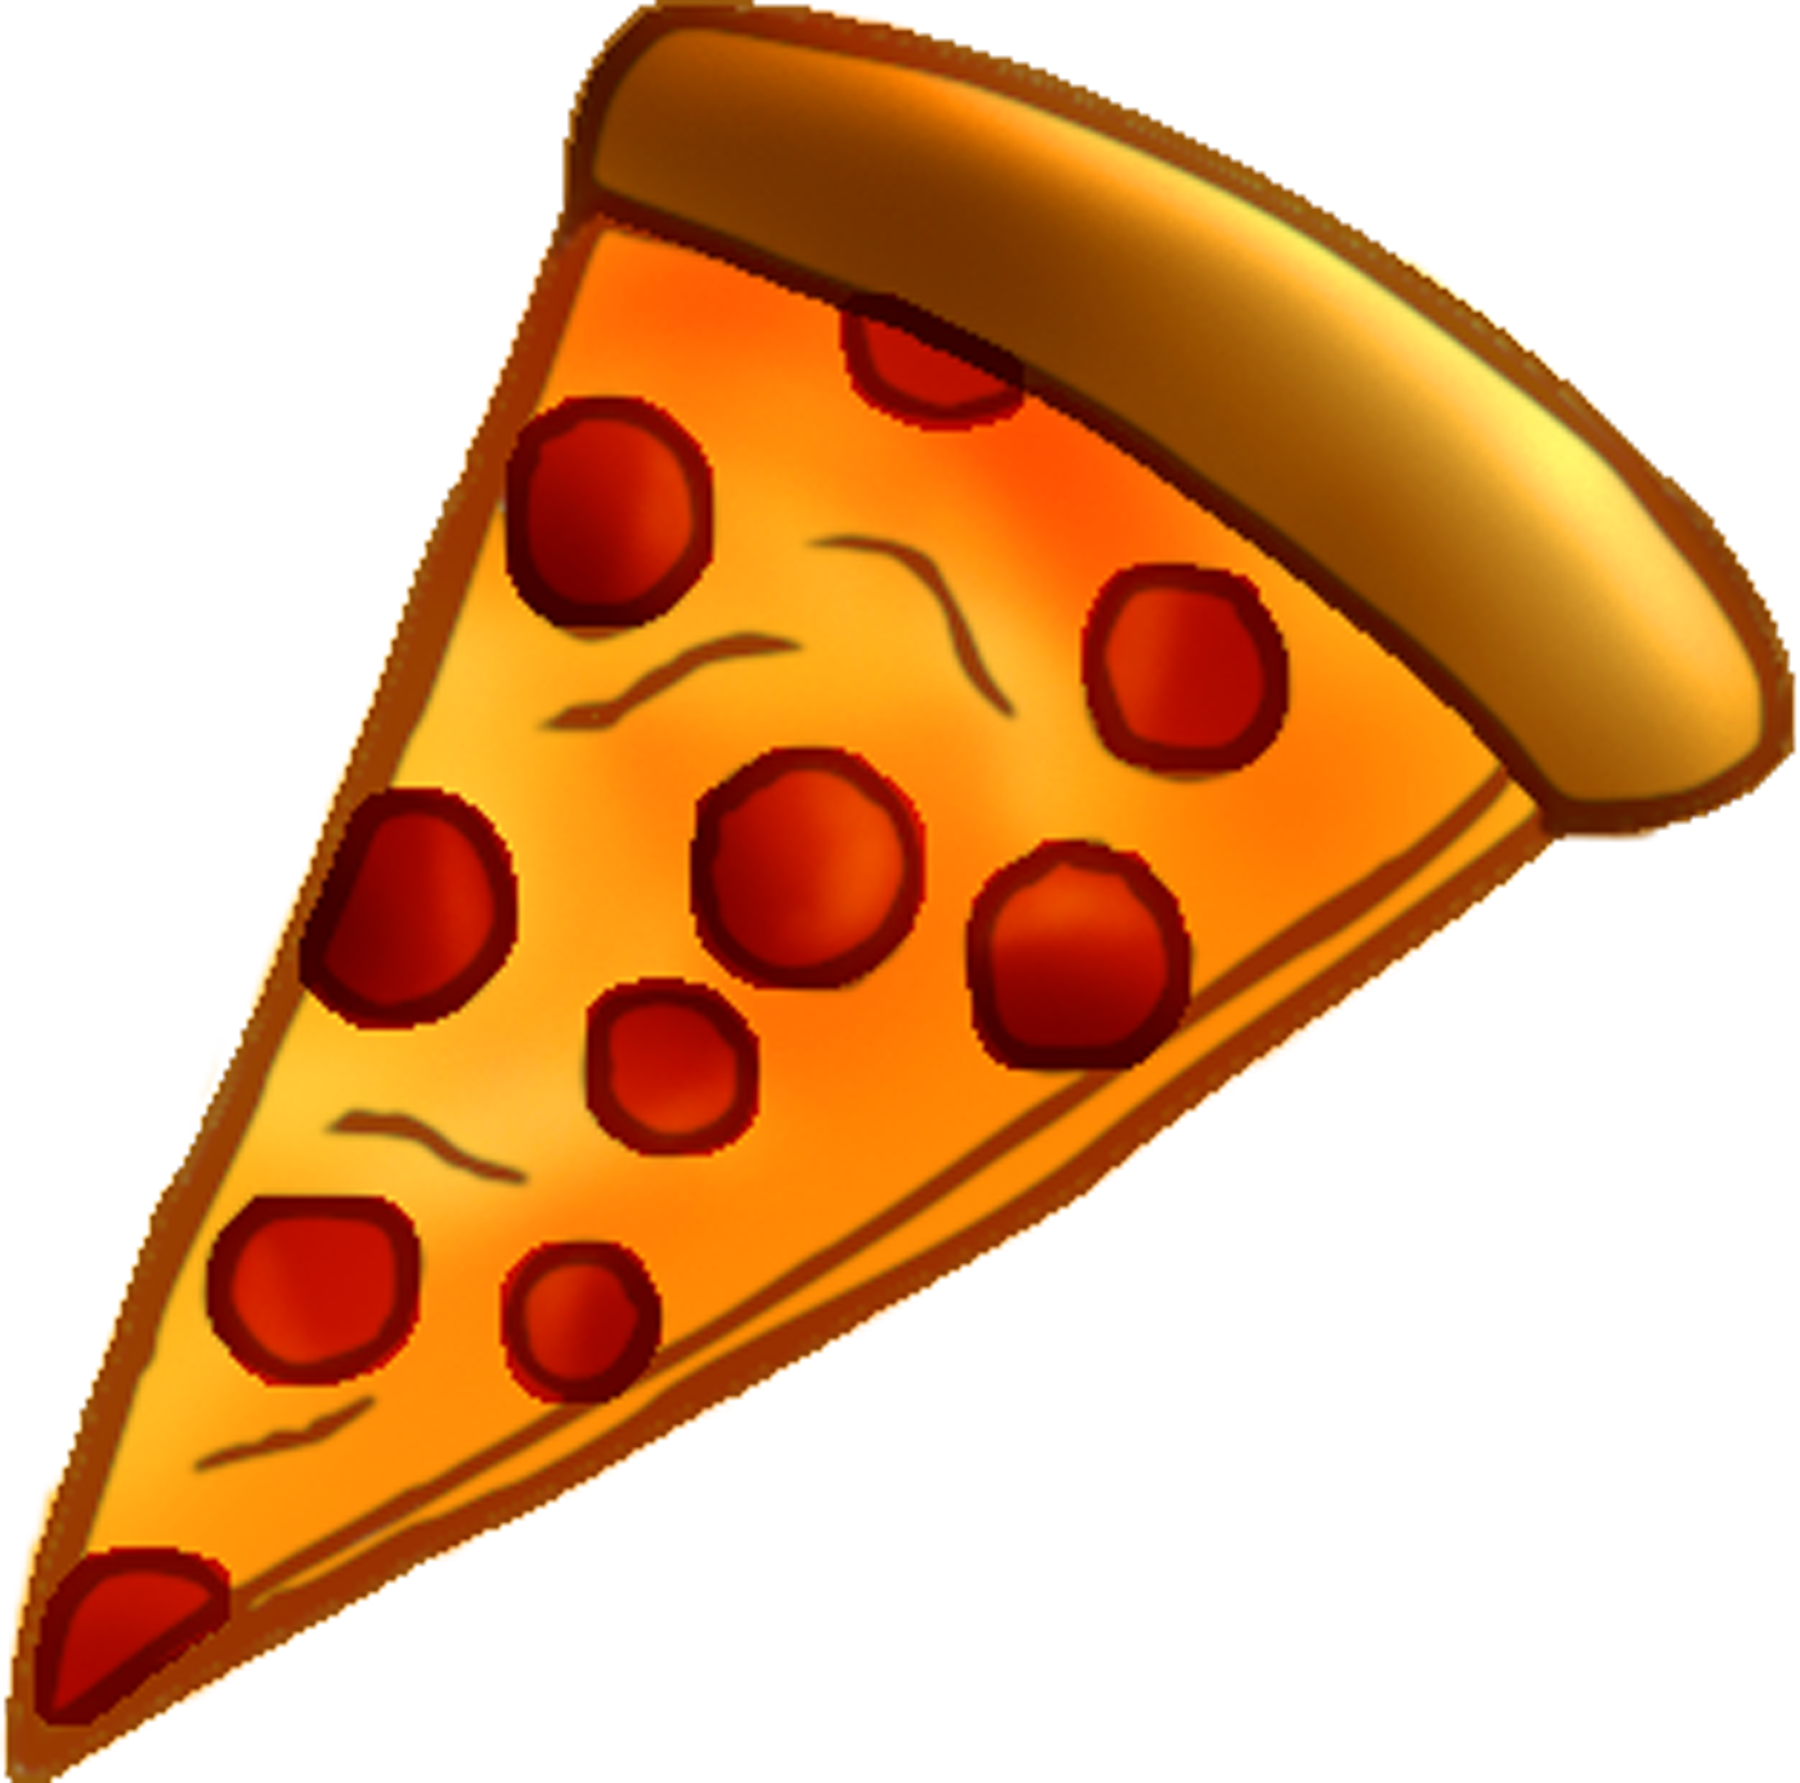 pizza slice clipart cheese